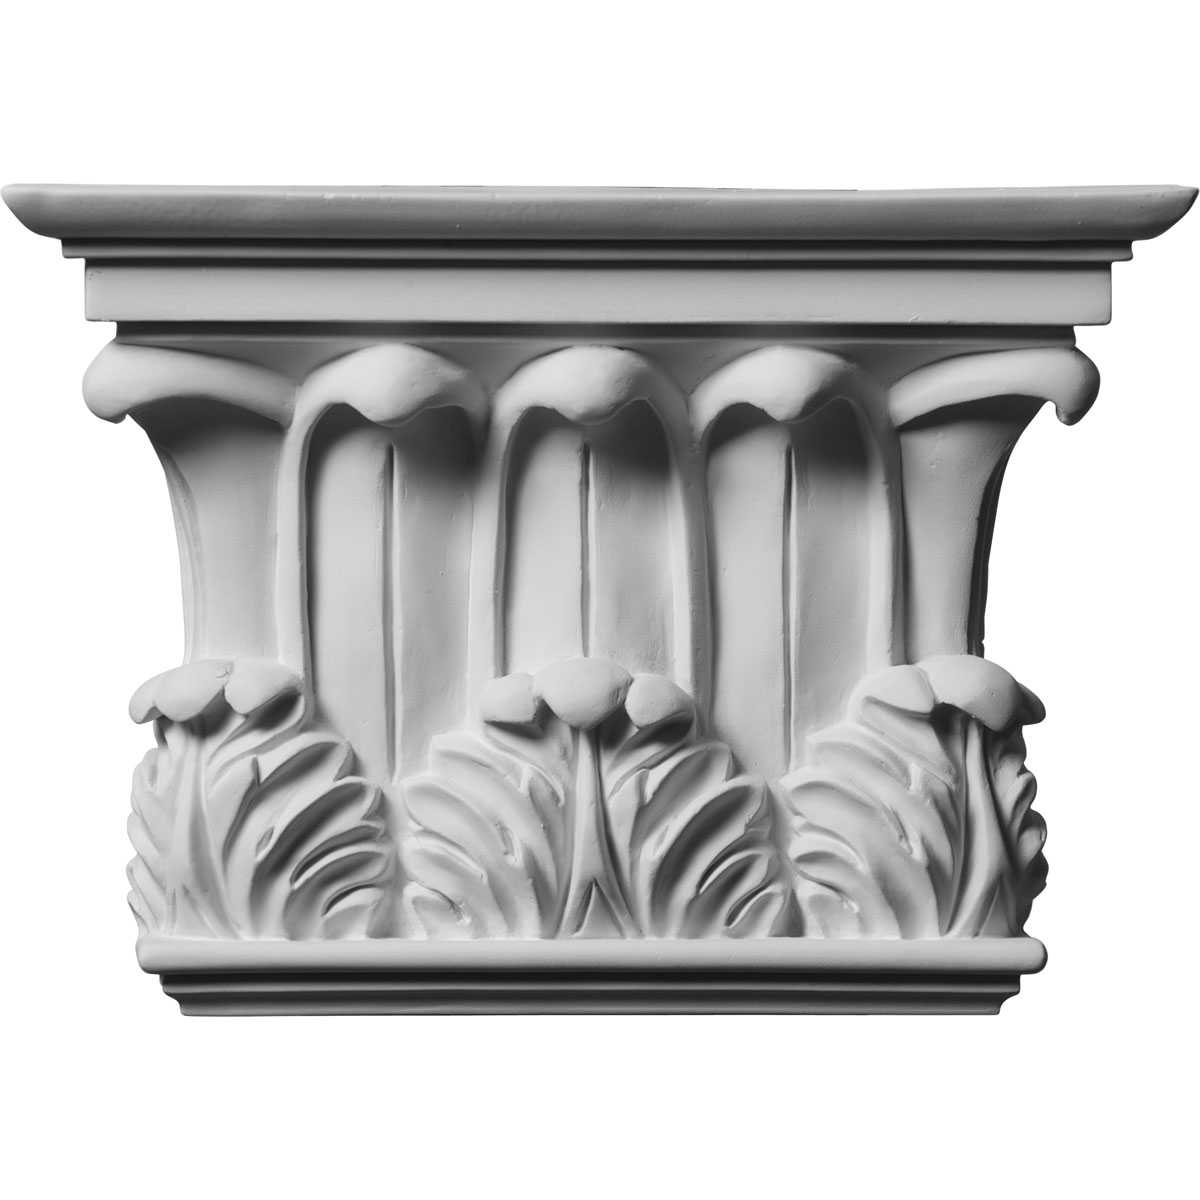 10 3/4'W x 7 5/8'H x 2 3/4'P Temple of Winds Capital (Fits Pilasters up to 7 3/8'W x 1 1/8'D)